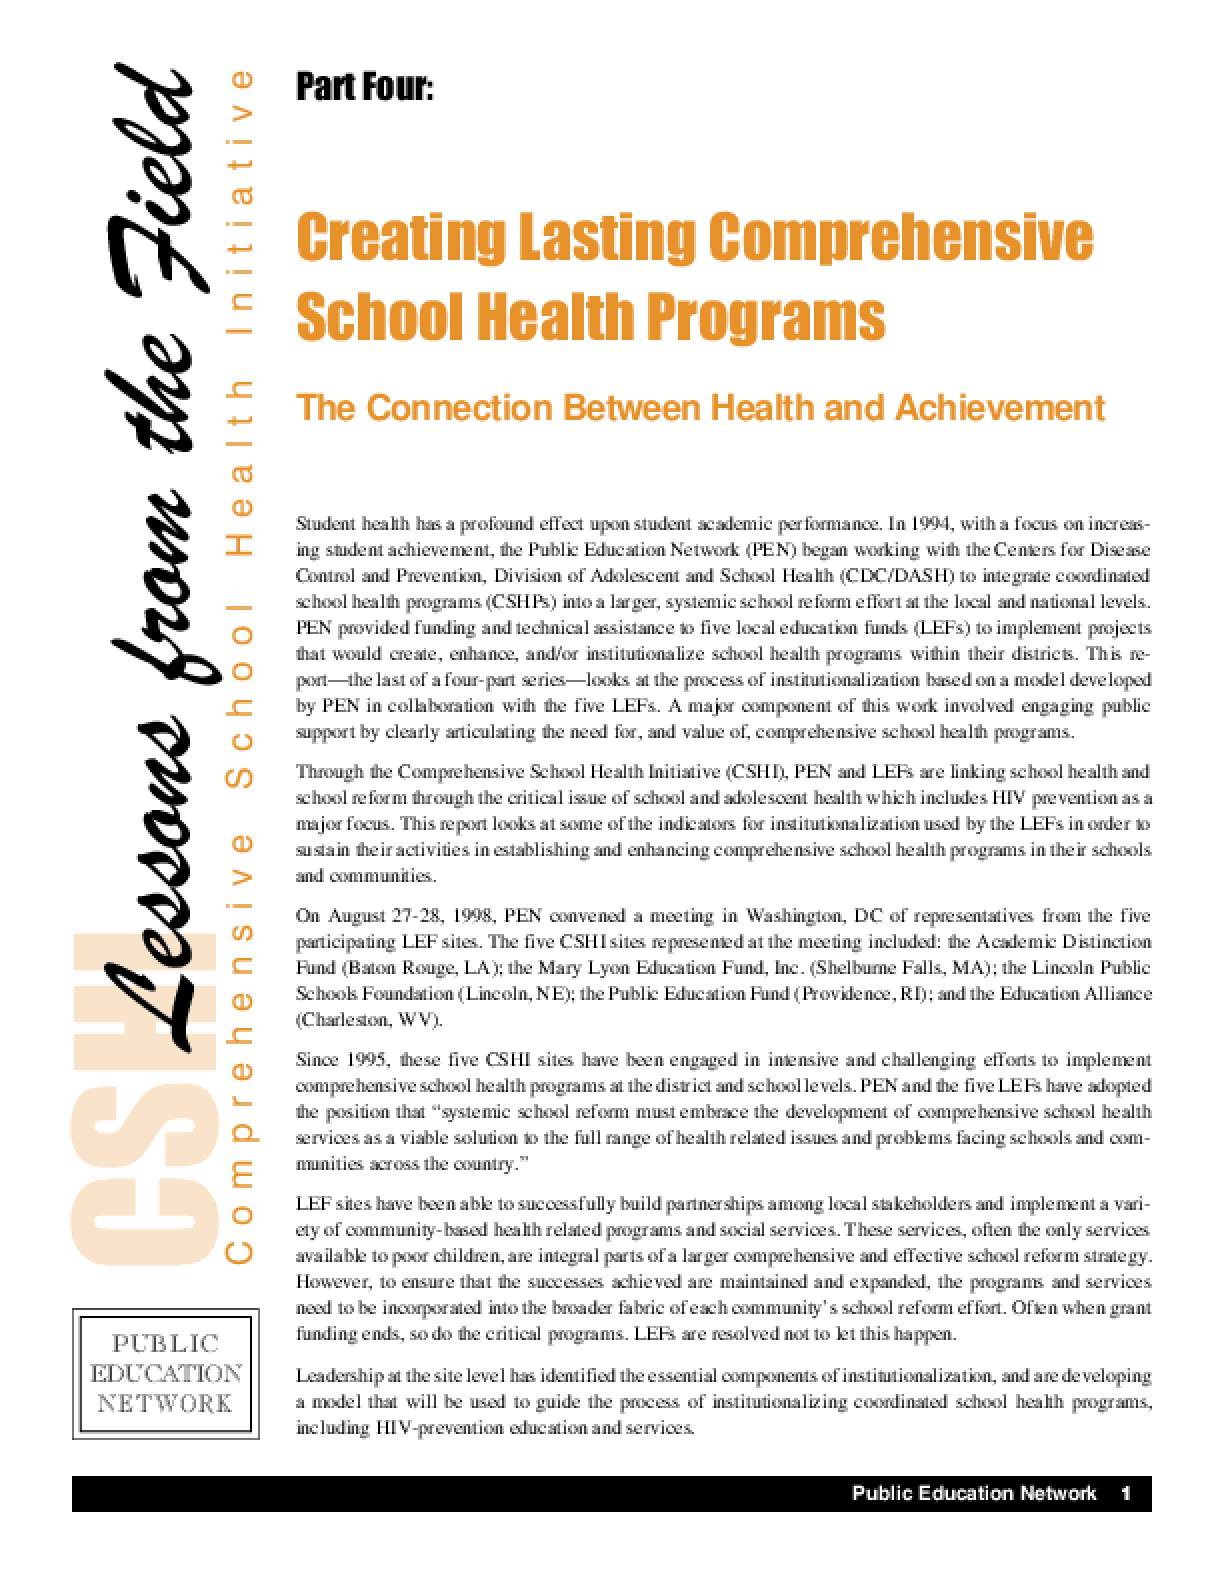 Creating Lasting Comprehensive School Health Programs: The Connection Between Health and Achievement